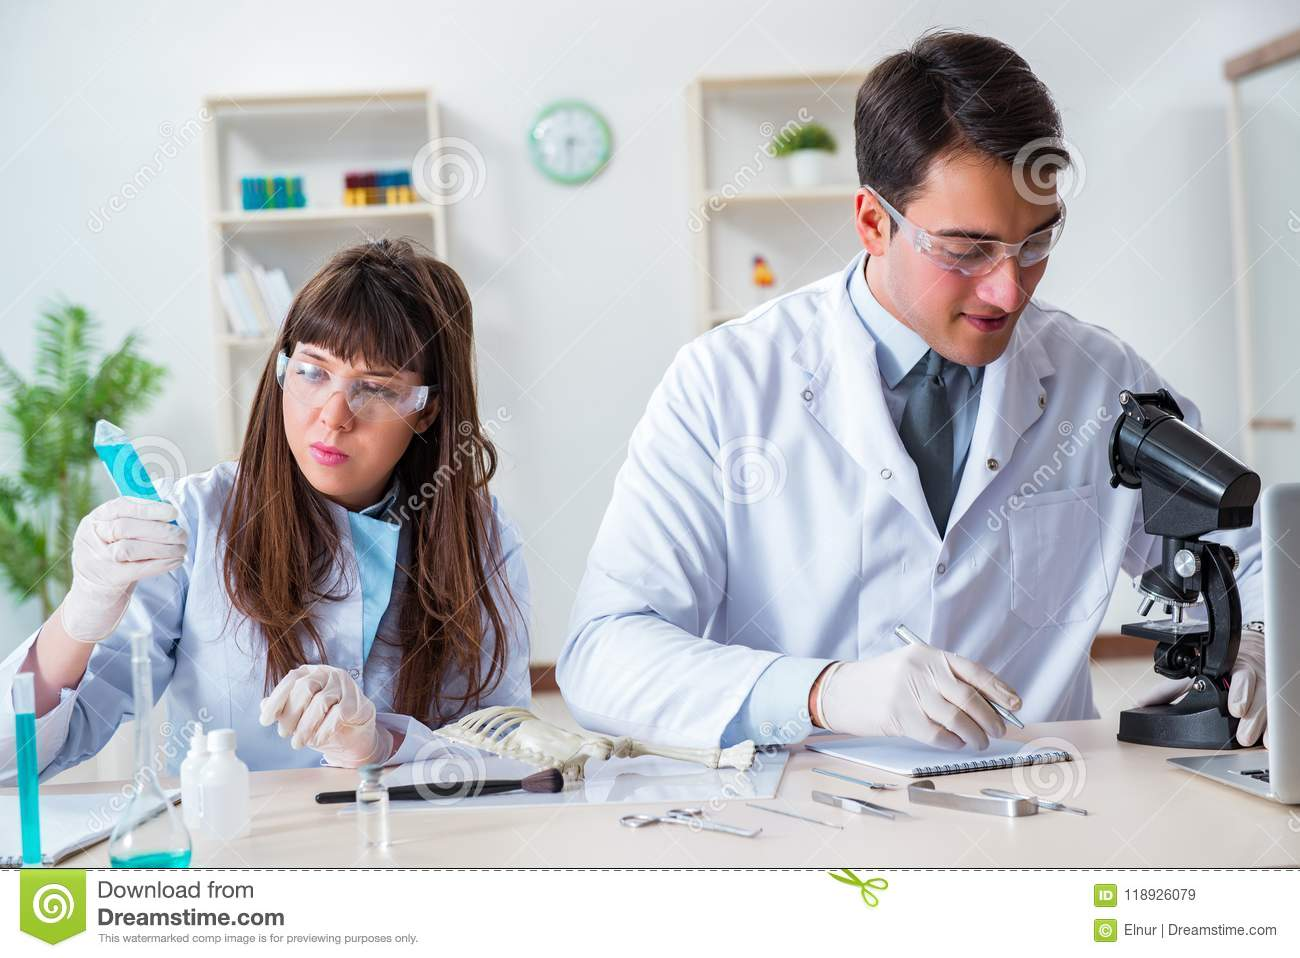 The paleontologists looking at bones of extinct animals